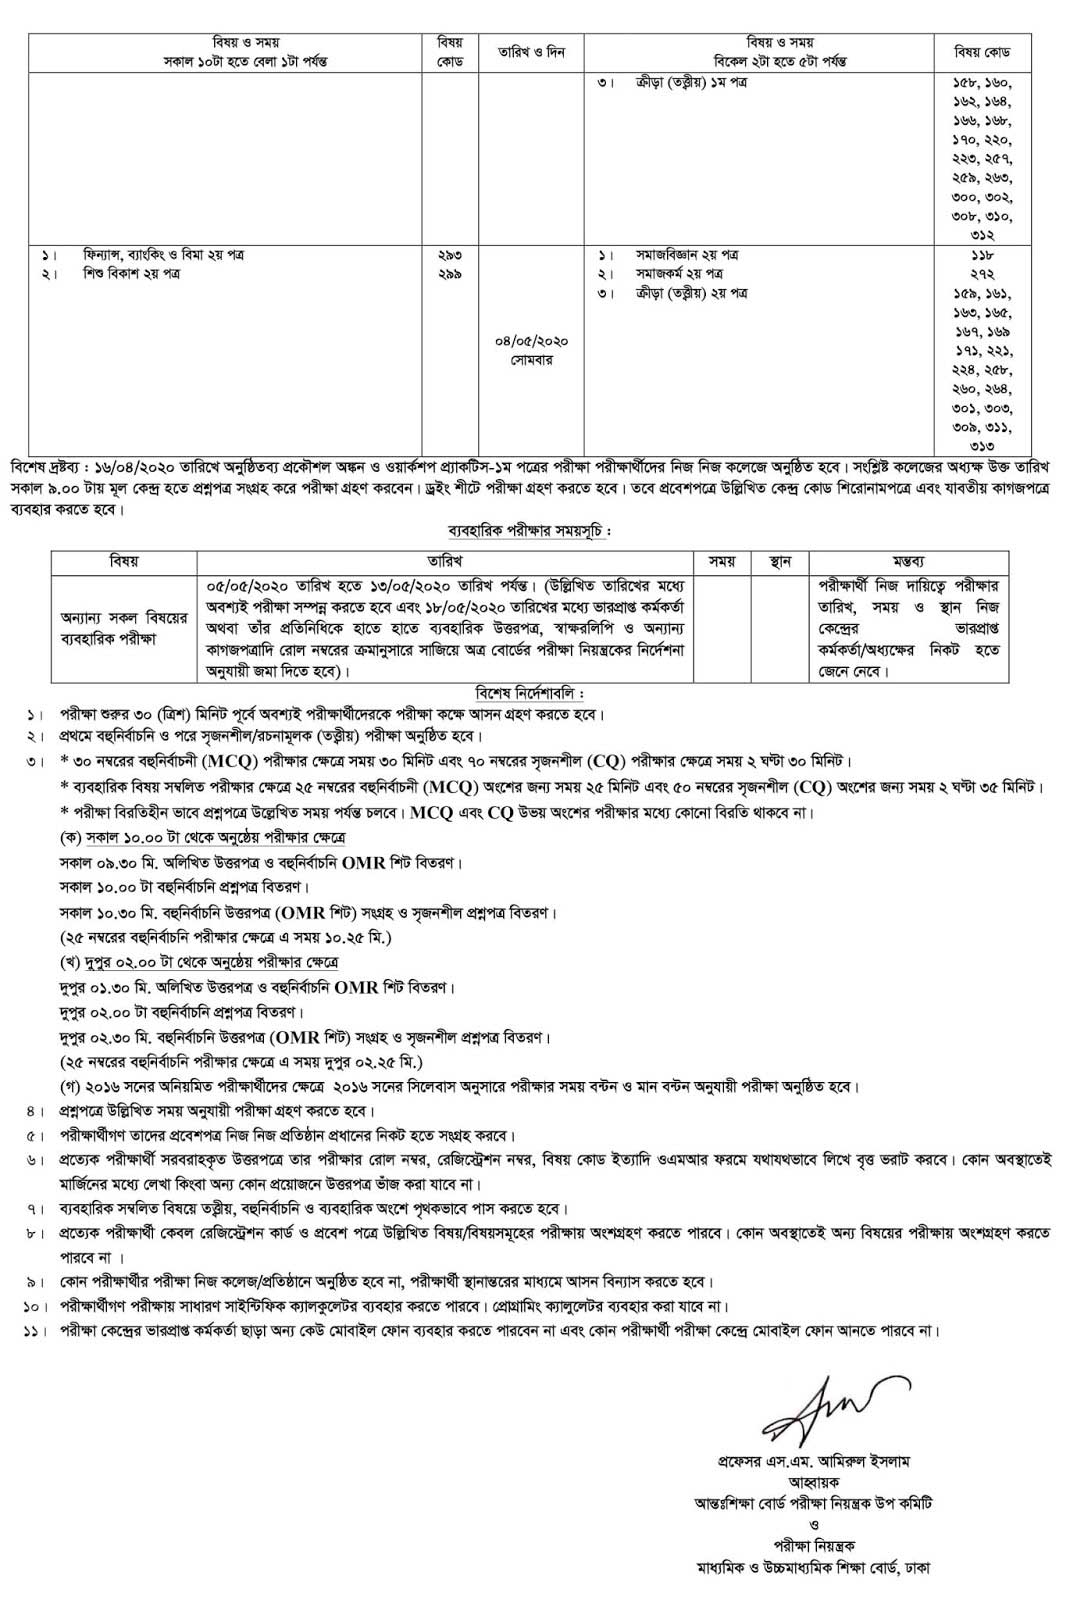 HSC Routine 2020 New Download